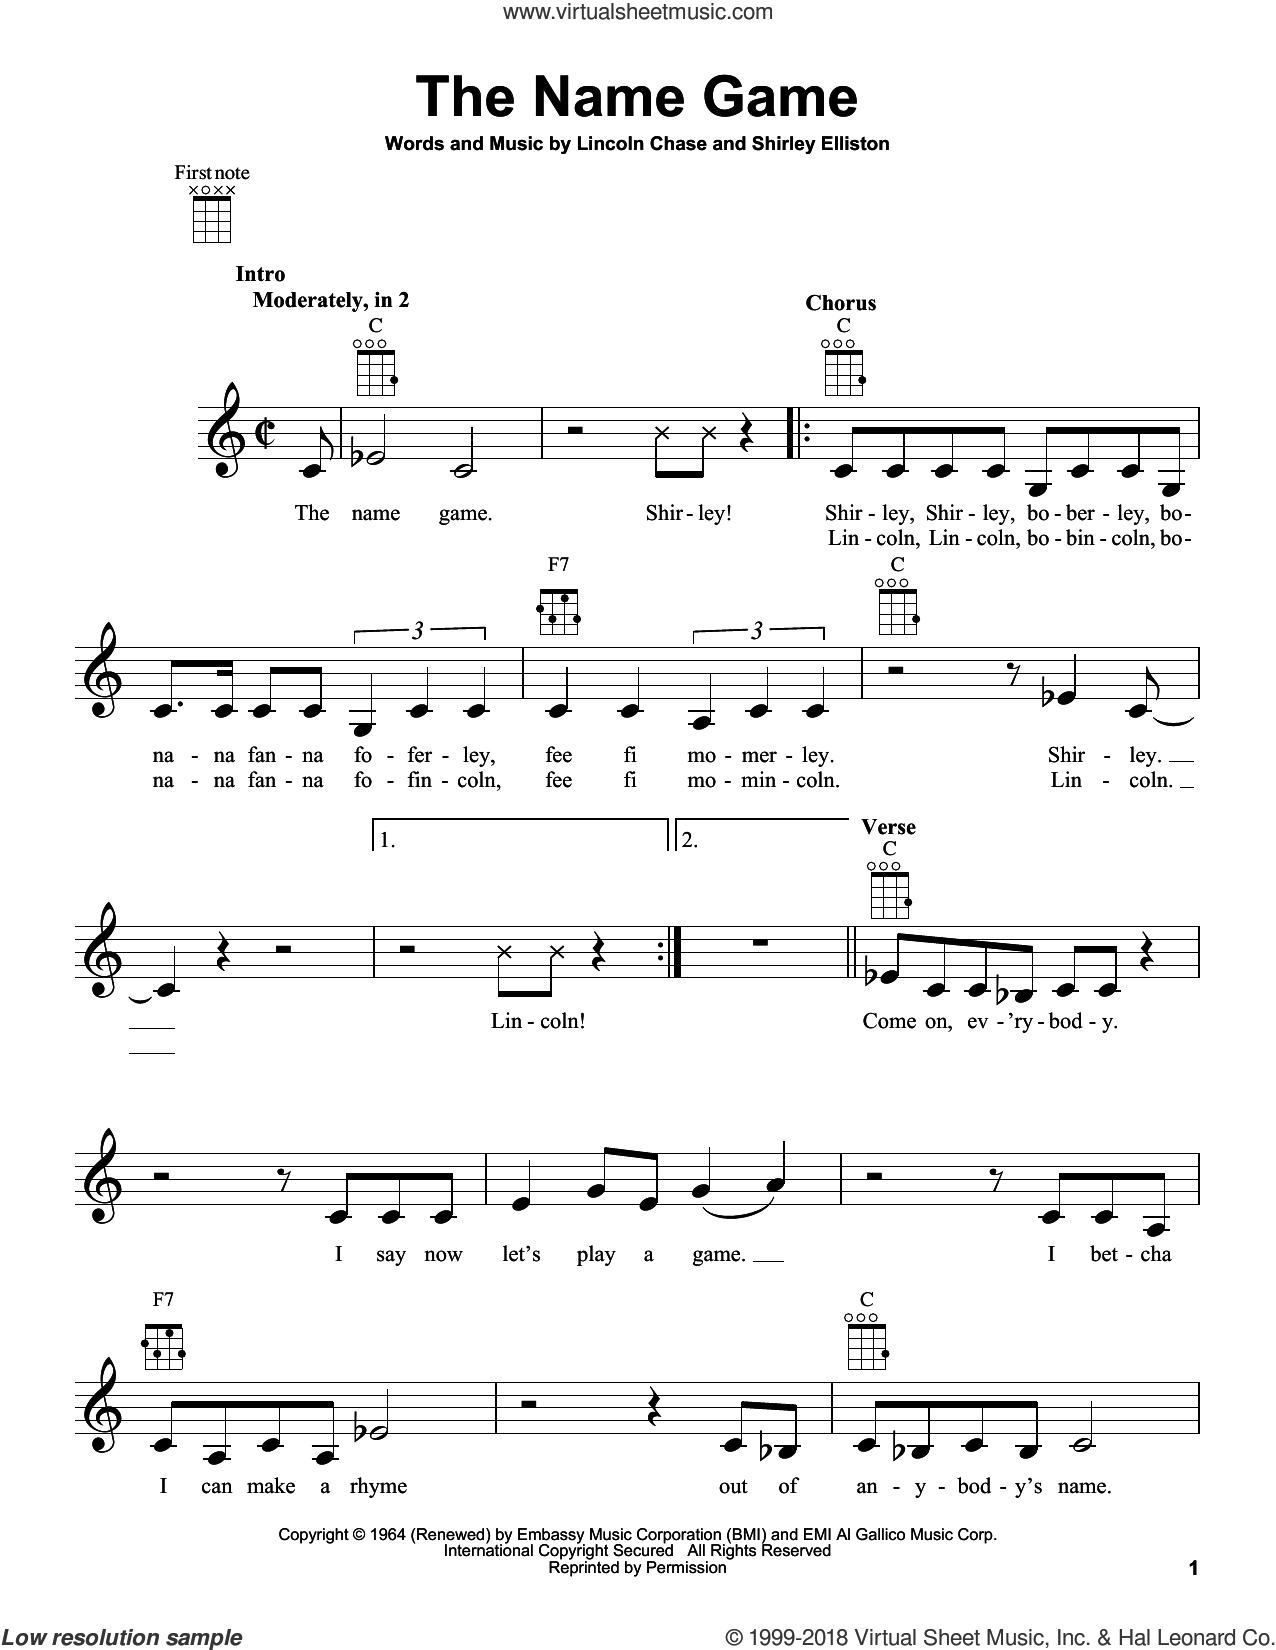 The Name Game sheet music for ukulele by Shirley Ellis, Lincoln Chase and Shirley Elliston, intermediate skill level